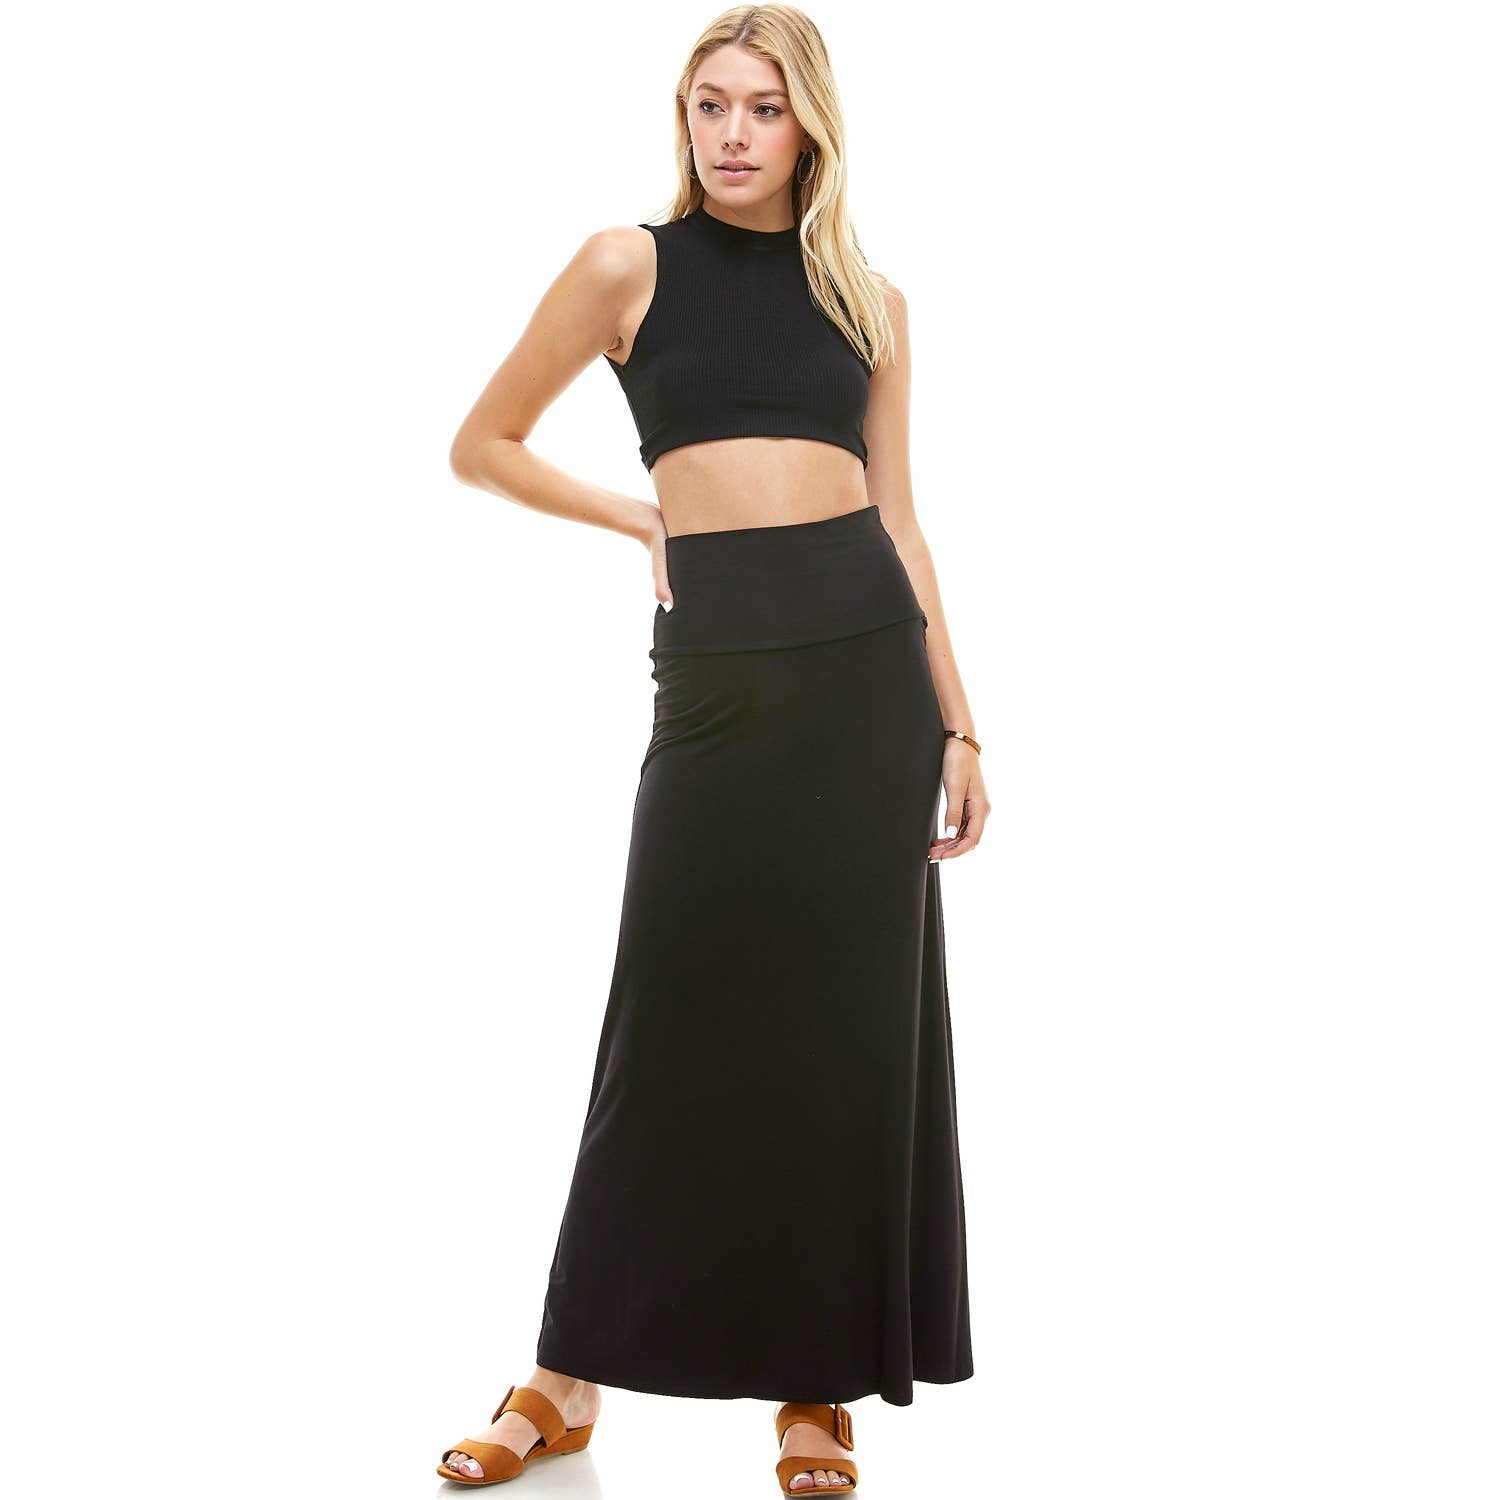 High Waist Soft Maxi Skirt | ASK-9001RS | Made in USA